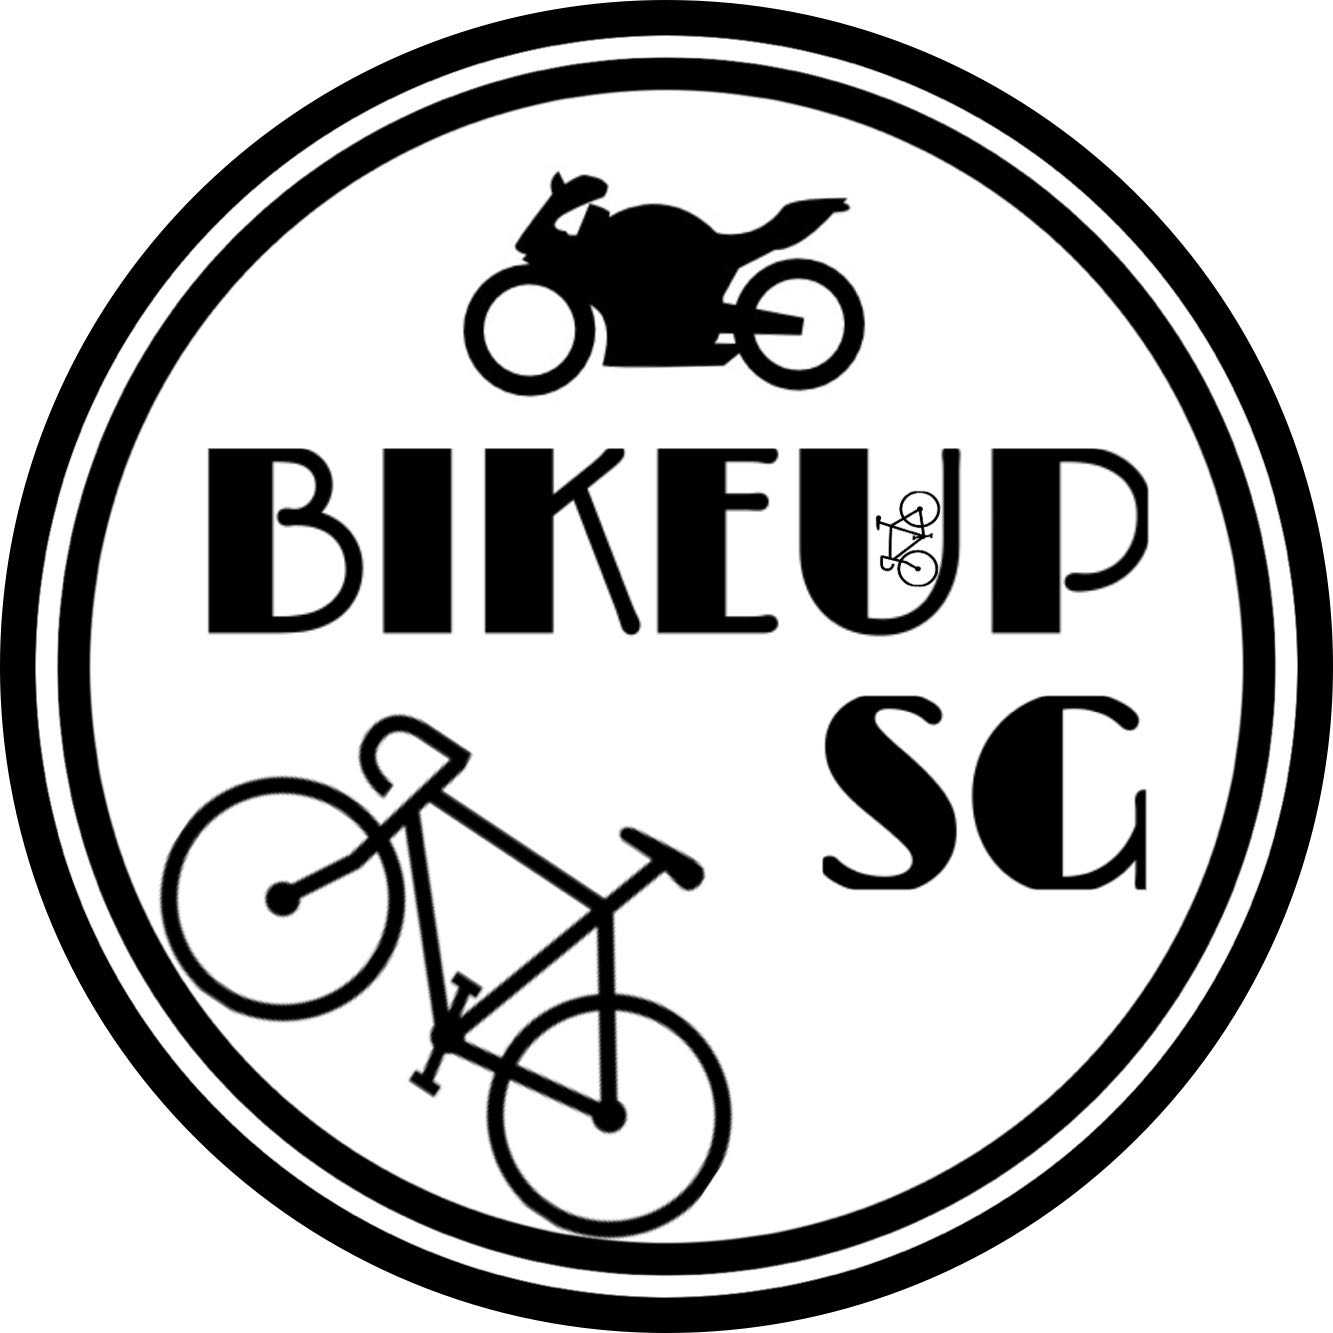 bikeupinc's items for sale on Carousell